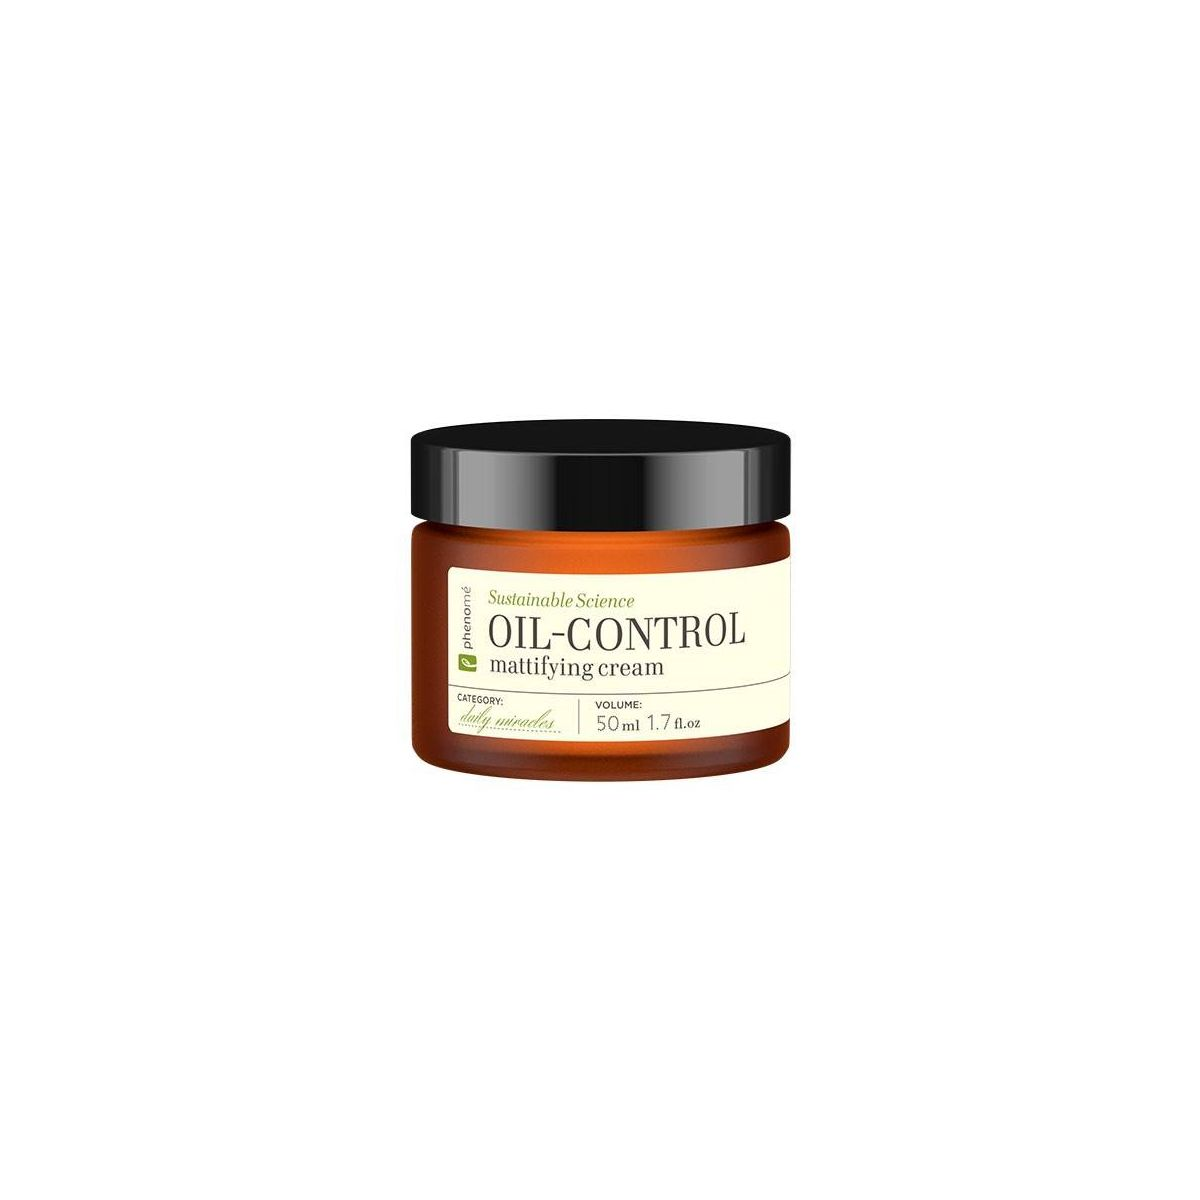 OIL-CONTROL mattifying cream